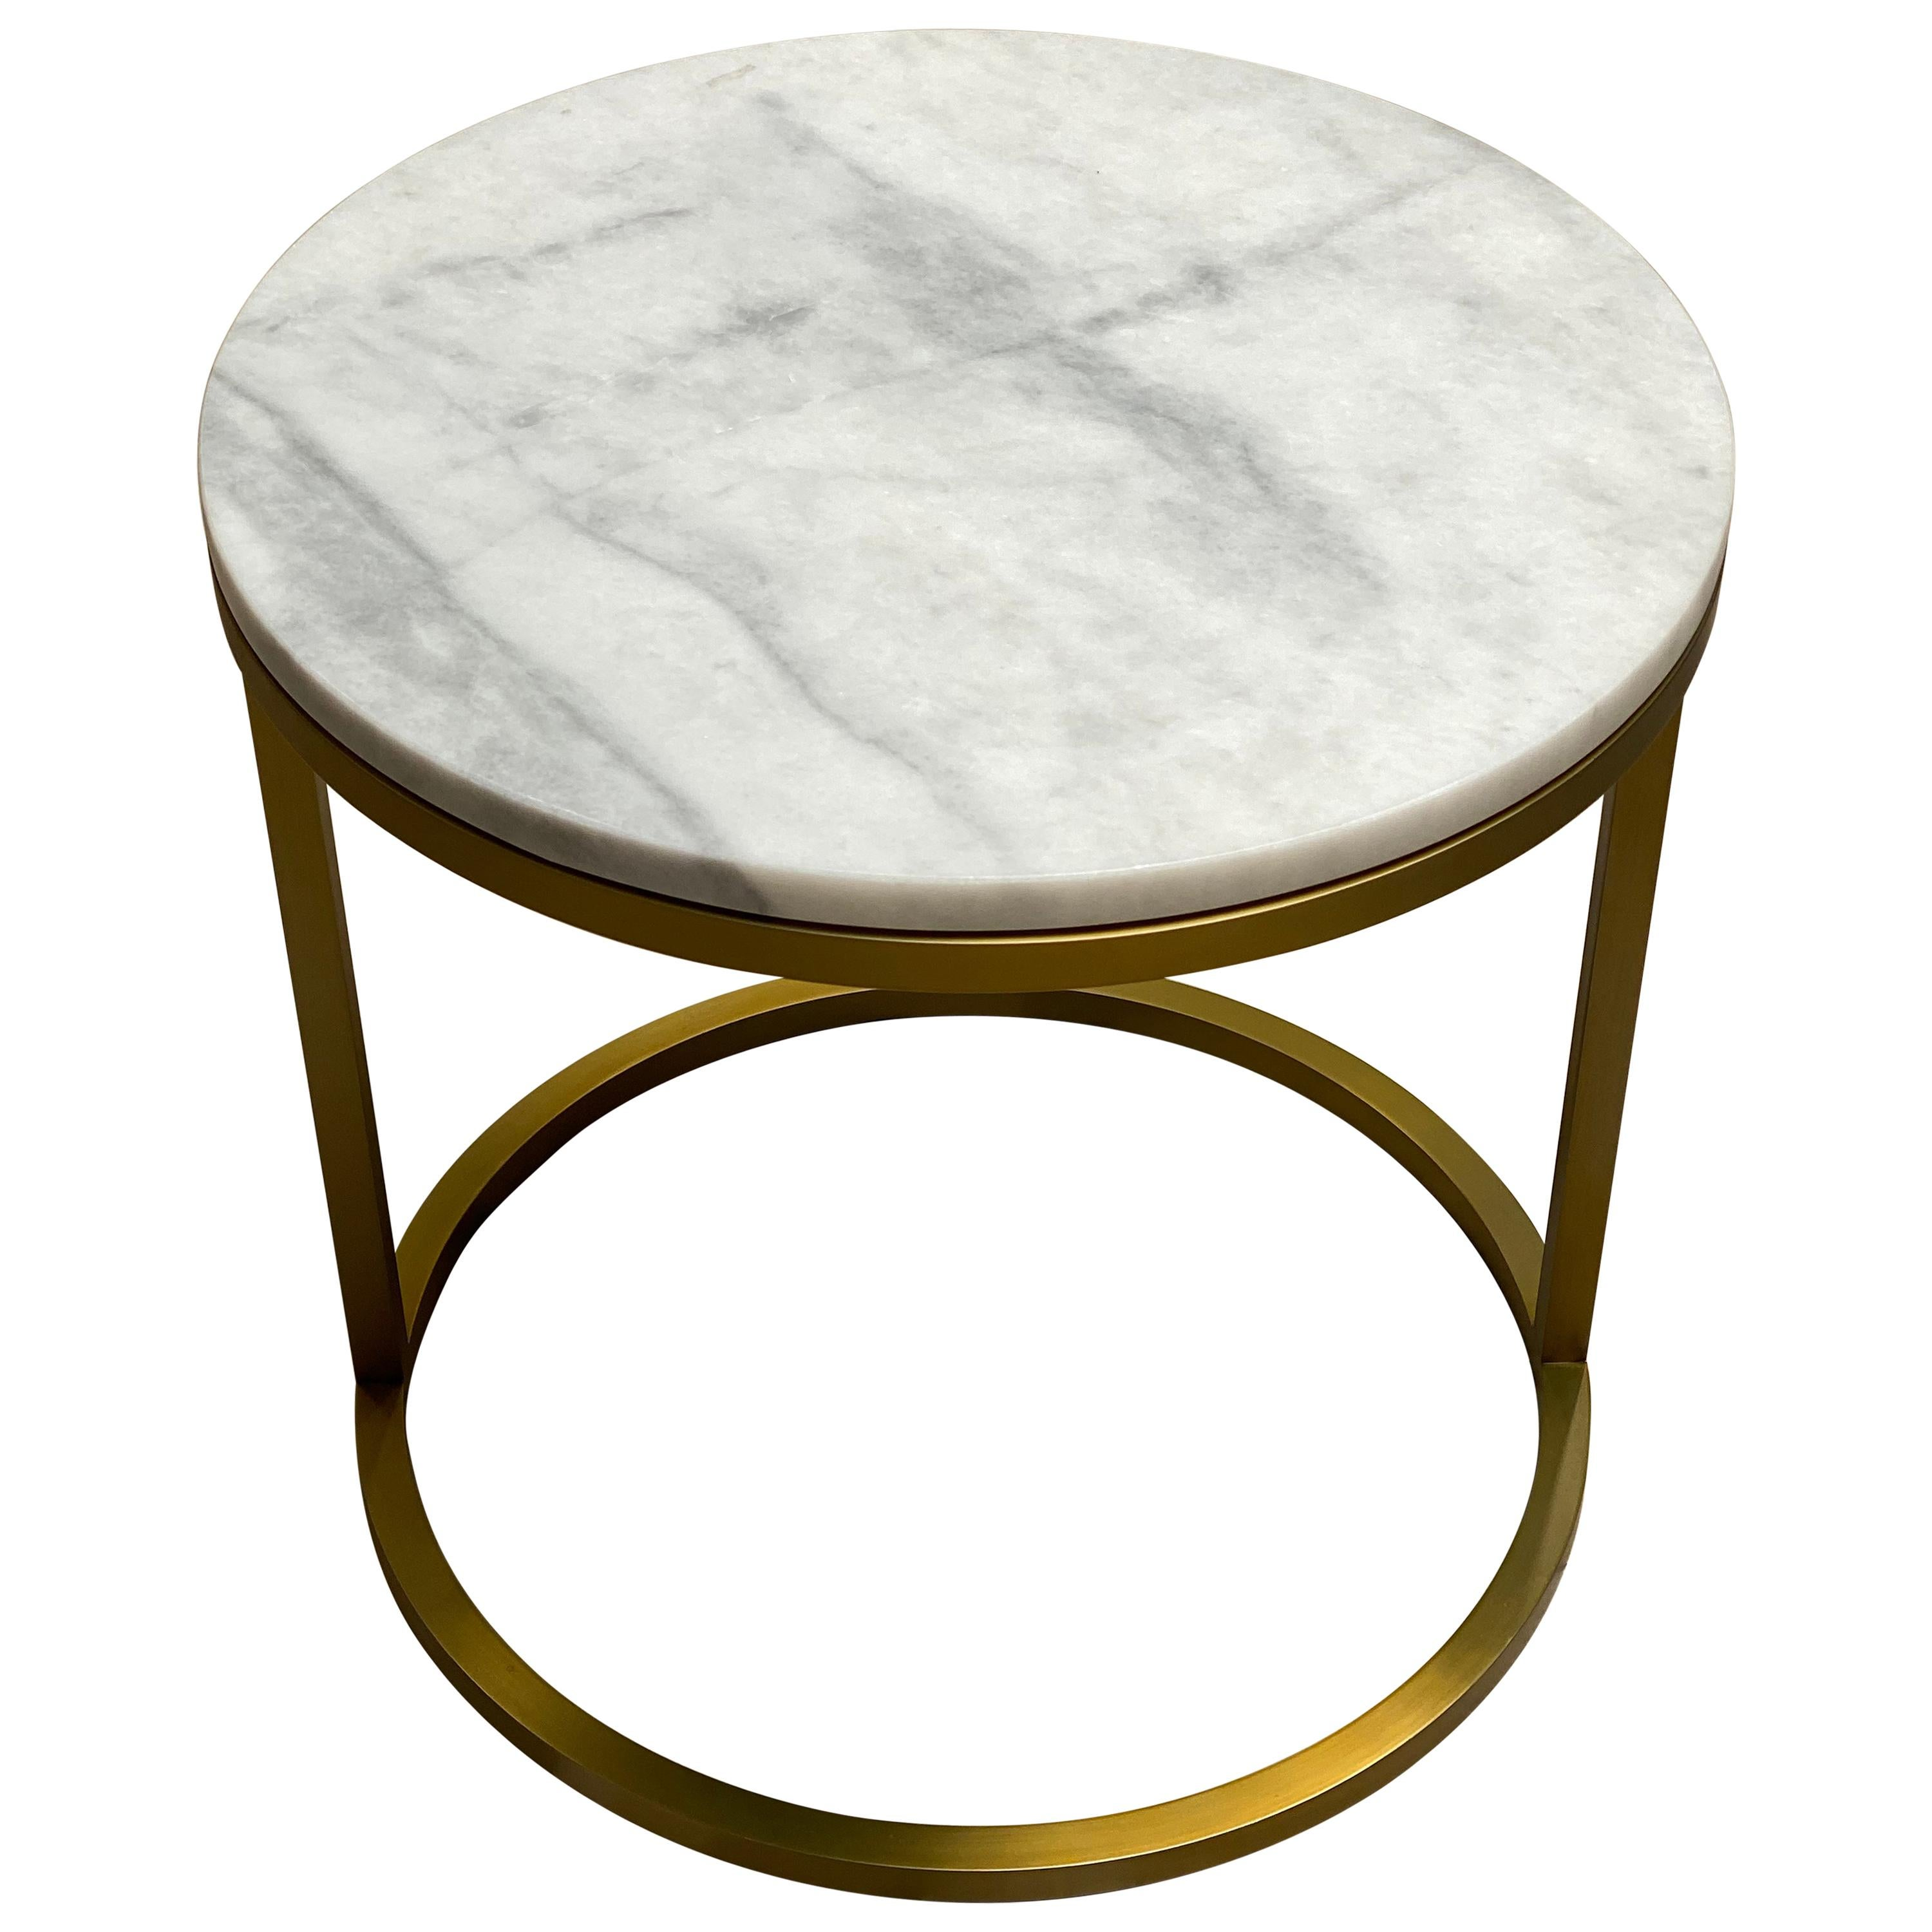 Art Deco Inspired Diana Round Coffee Table in Brass Tinted and Arabescato Marble